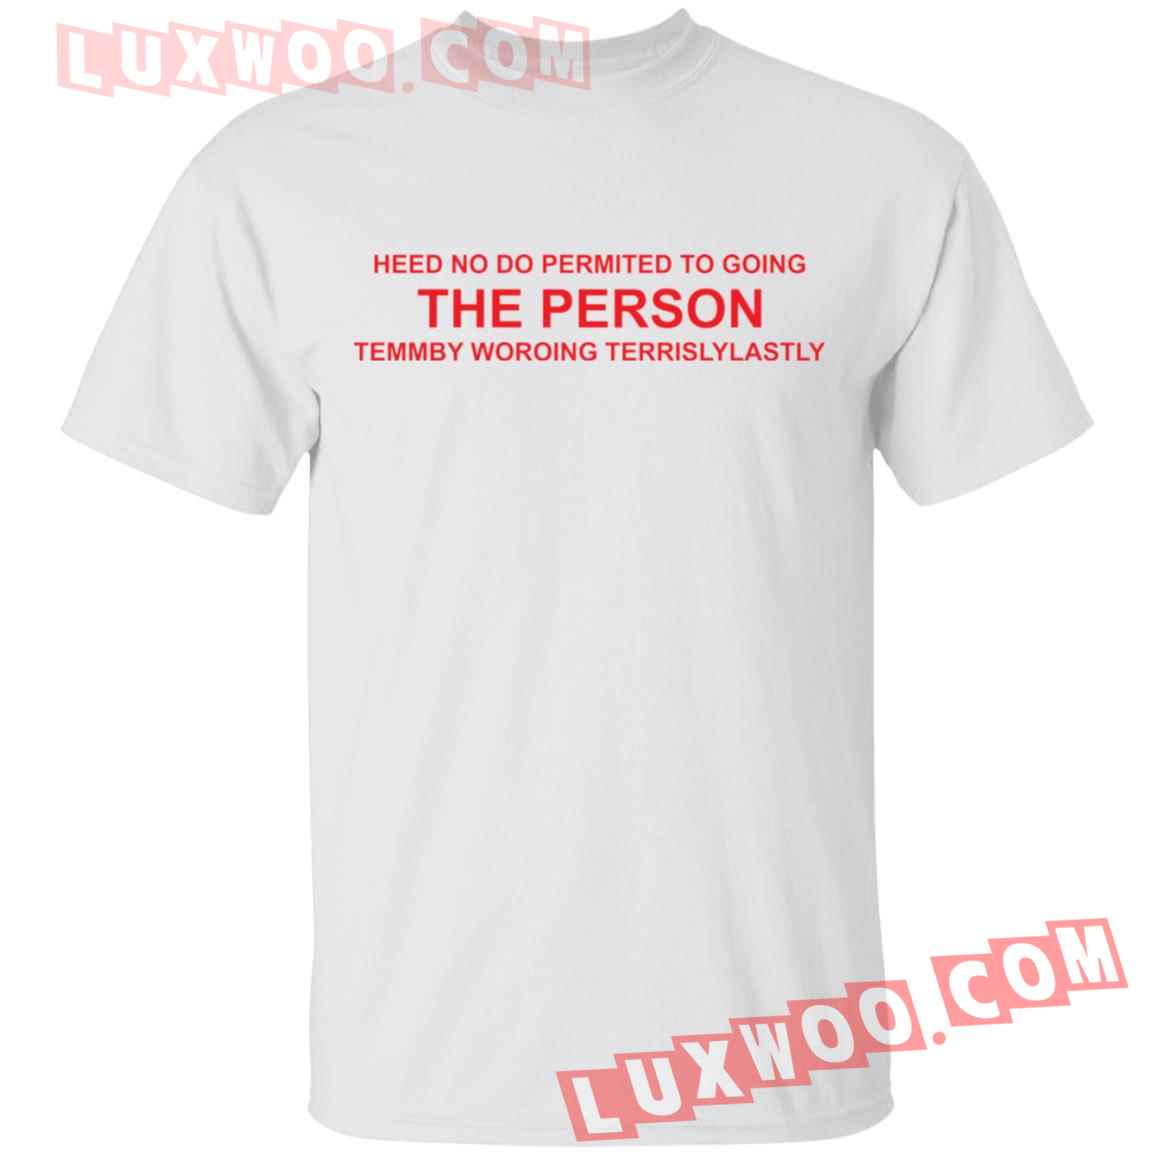 Heed No Do Permitted To Going The Person Temmby Woroing Terrislylastly Shirt